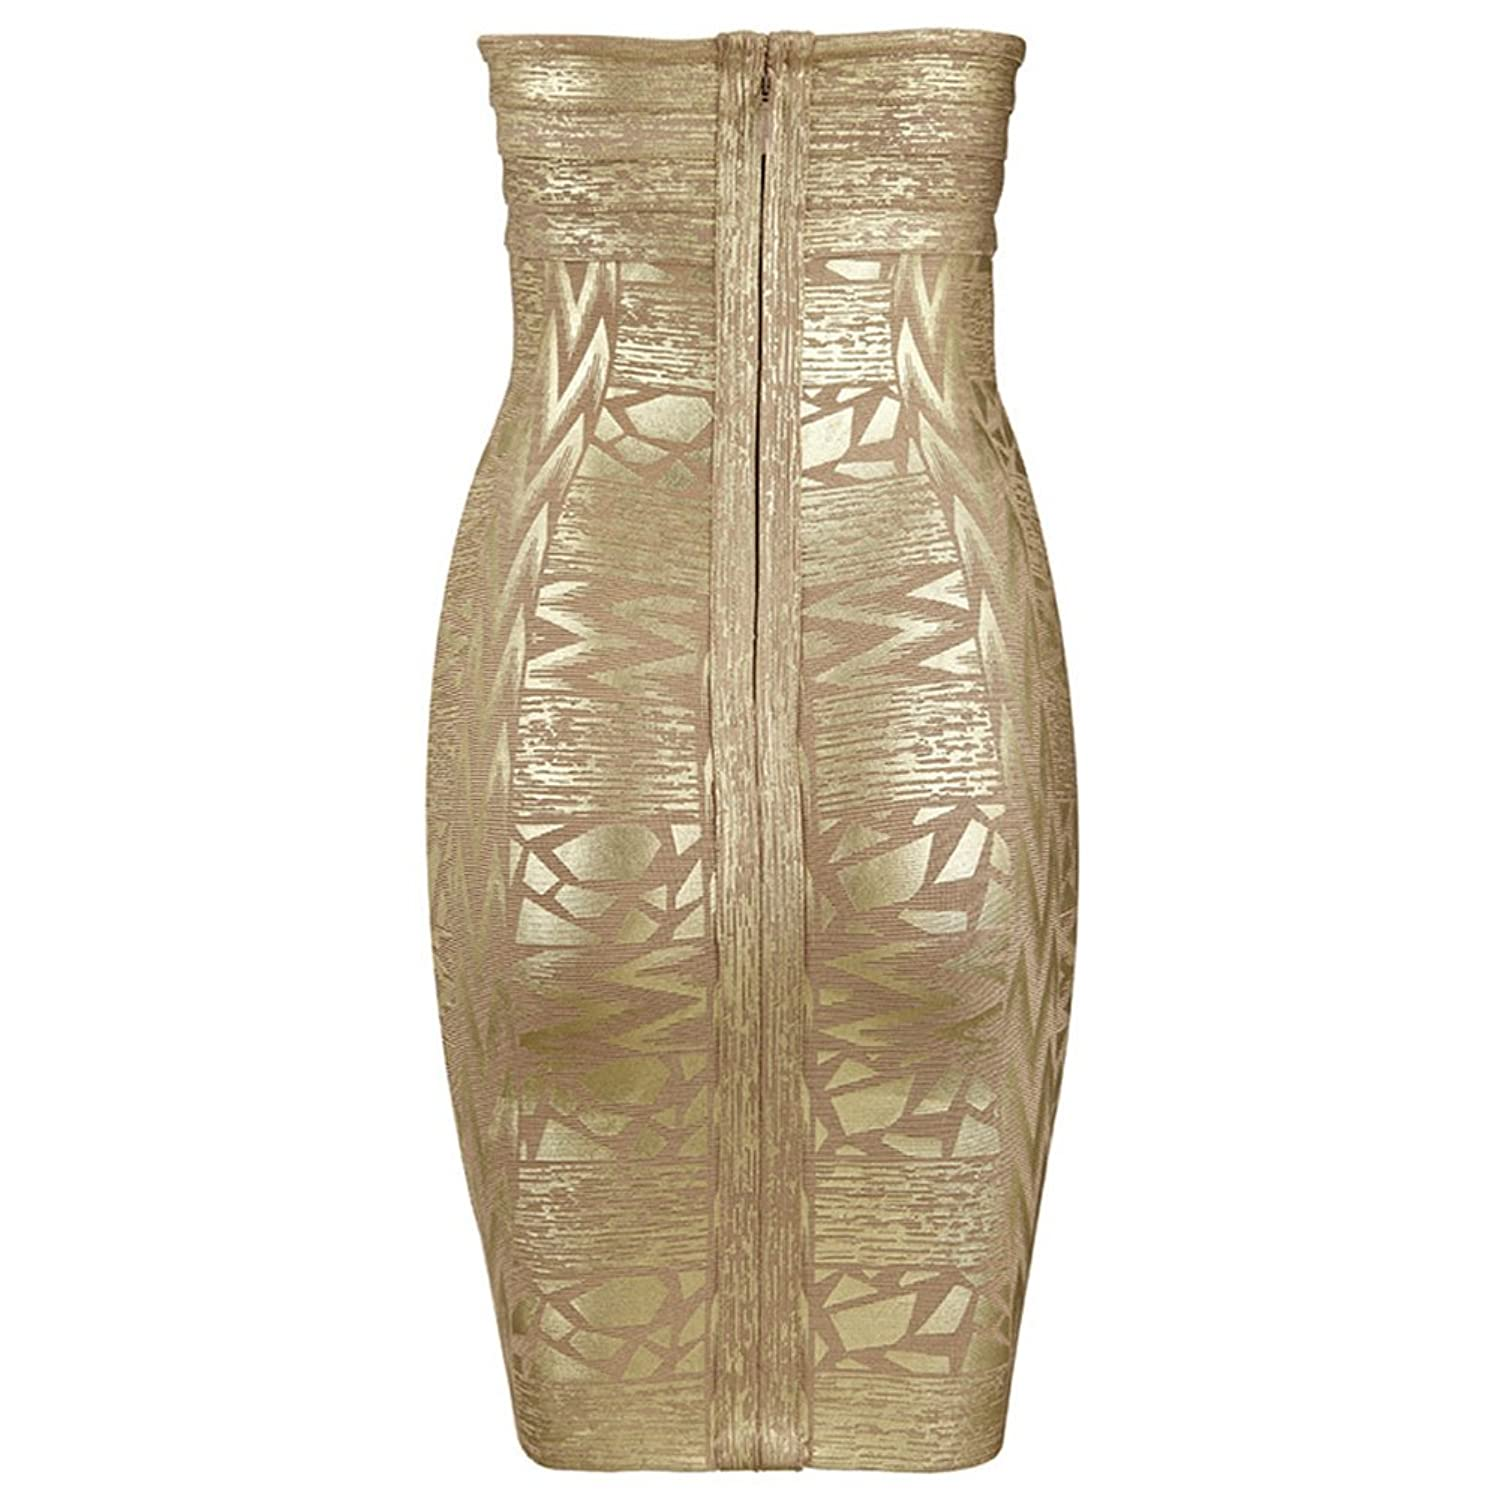 Vivian - Gold Sweetheart Crystal Diamond Embellished Bandage Dress | Gold Bandage Dress Size | Size: XS (Extra Small), S (Small), M (Medium), L (Large) | UK Size: 6, 8, 10, 12